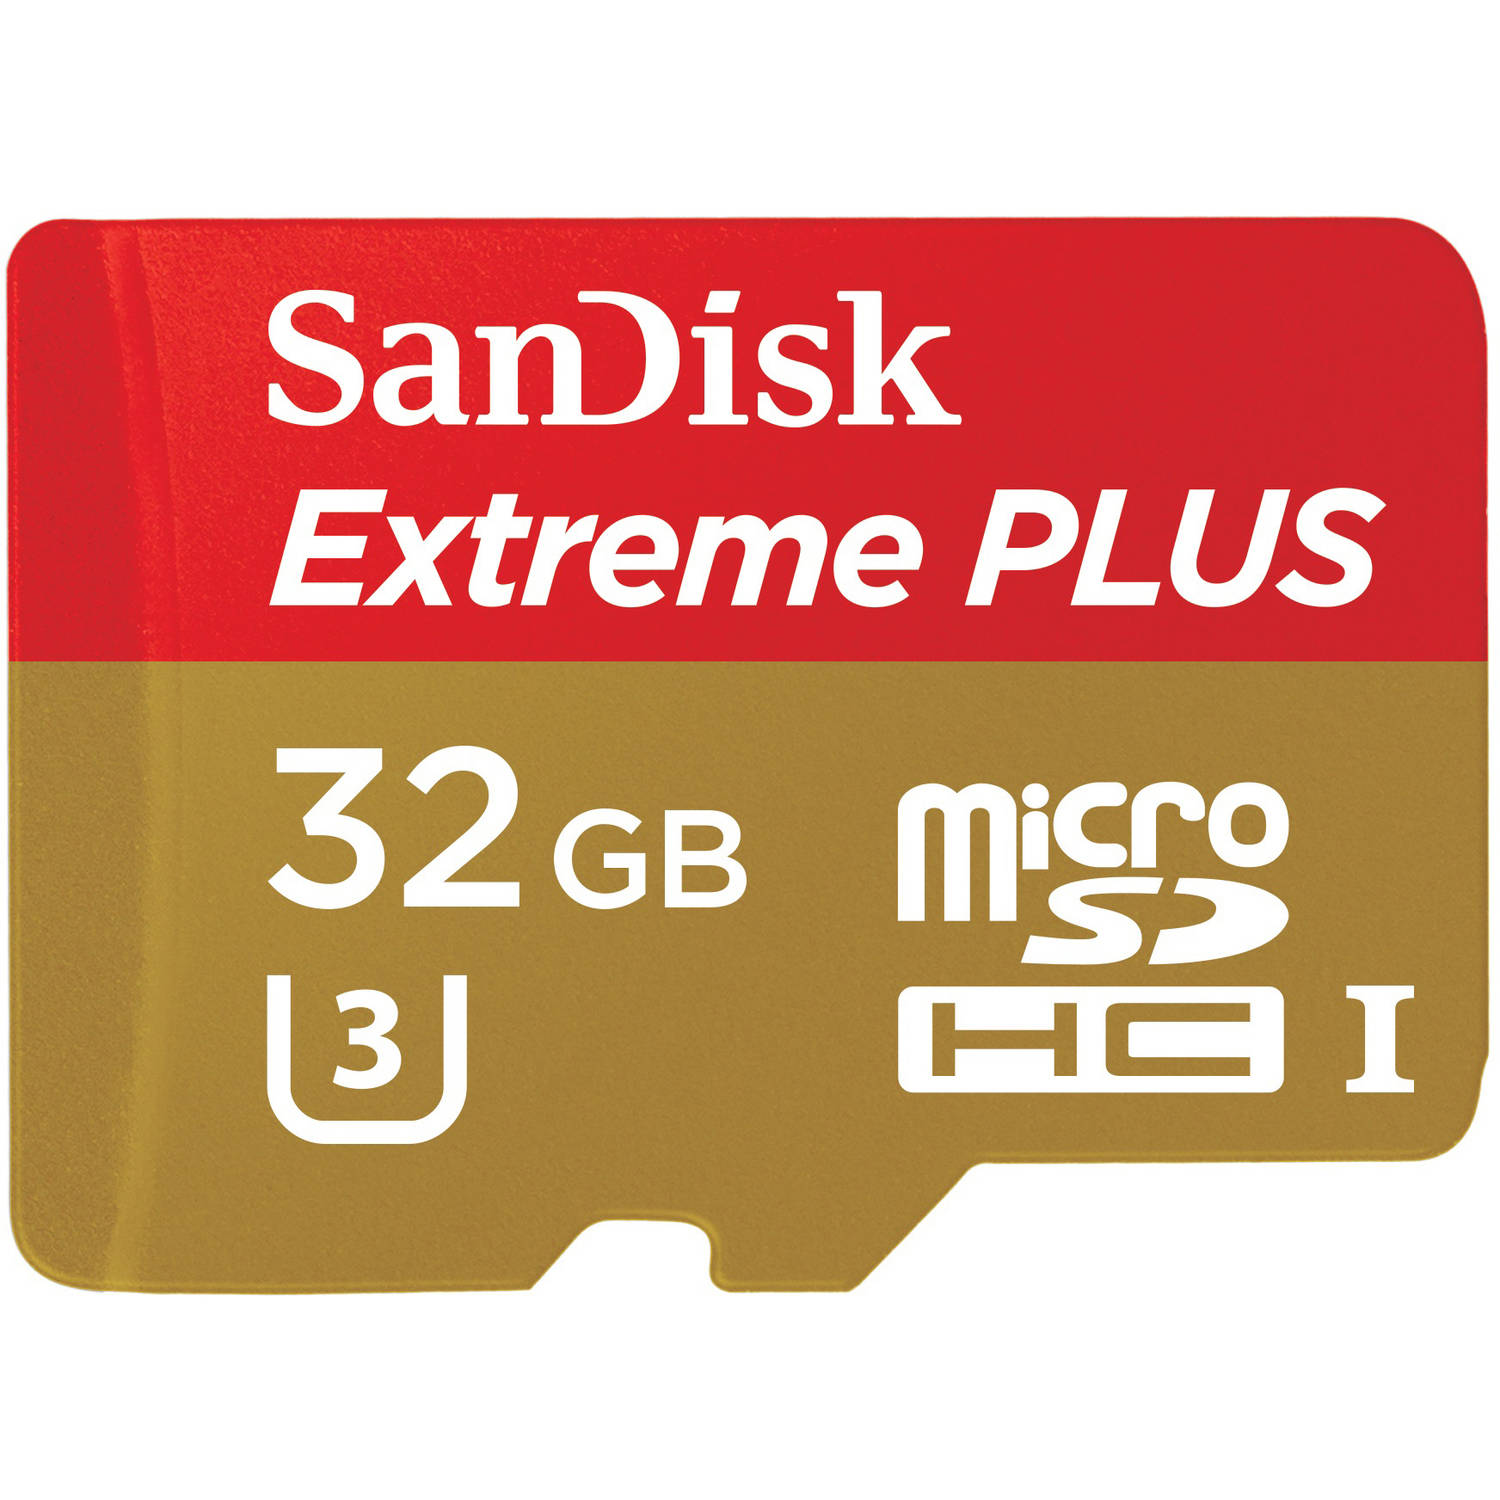 SanDisk Extreme PLUS 32GB microSD Card, Mobile, Class 10, Action Camera